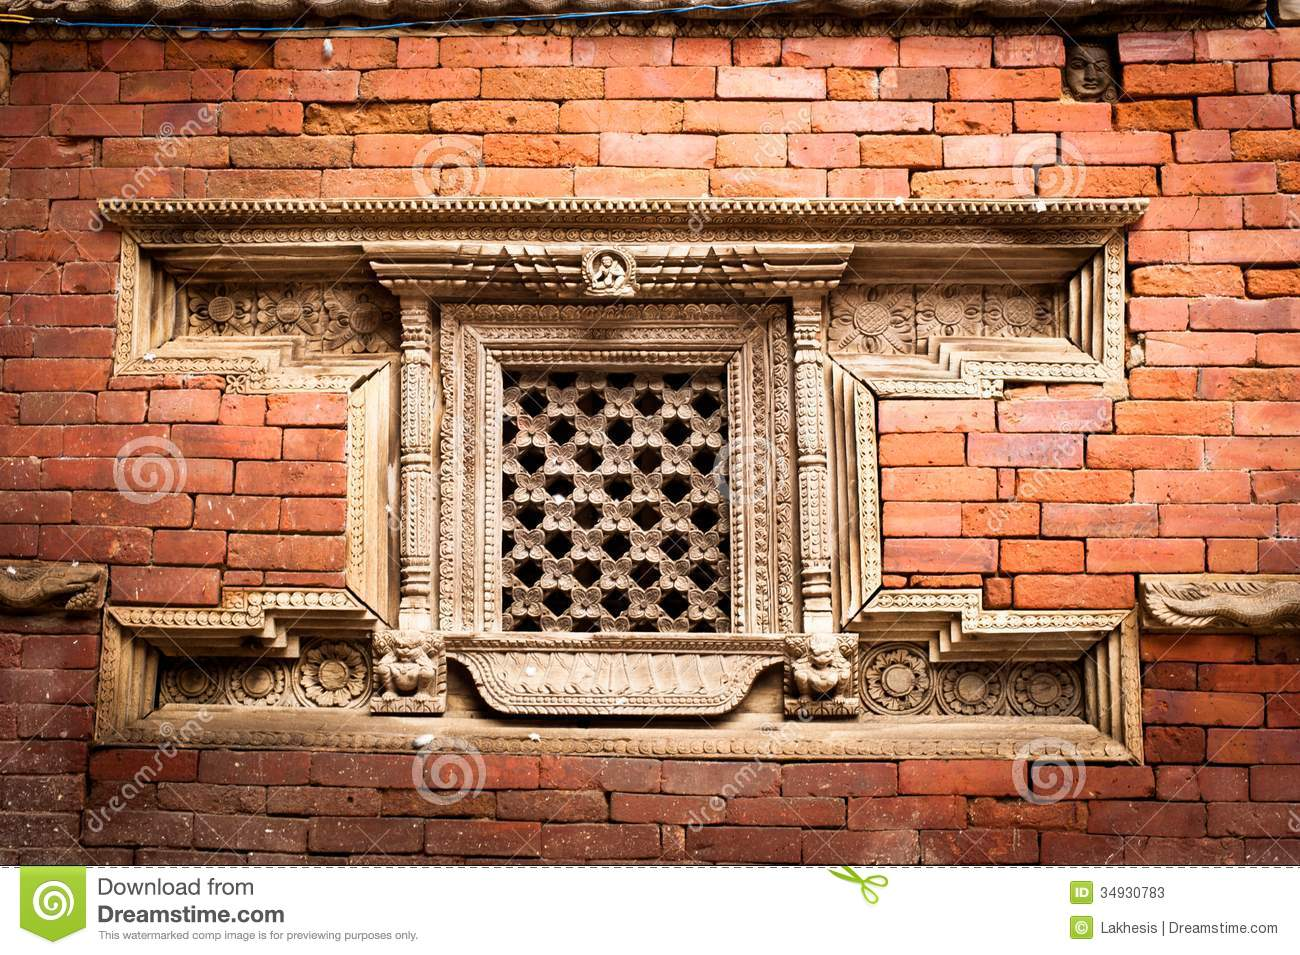 Hindu temple architecture detail nepal stock photos for Window design in nepal